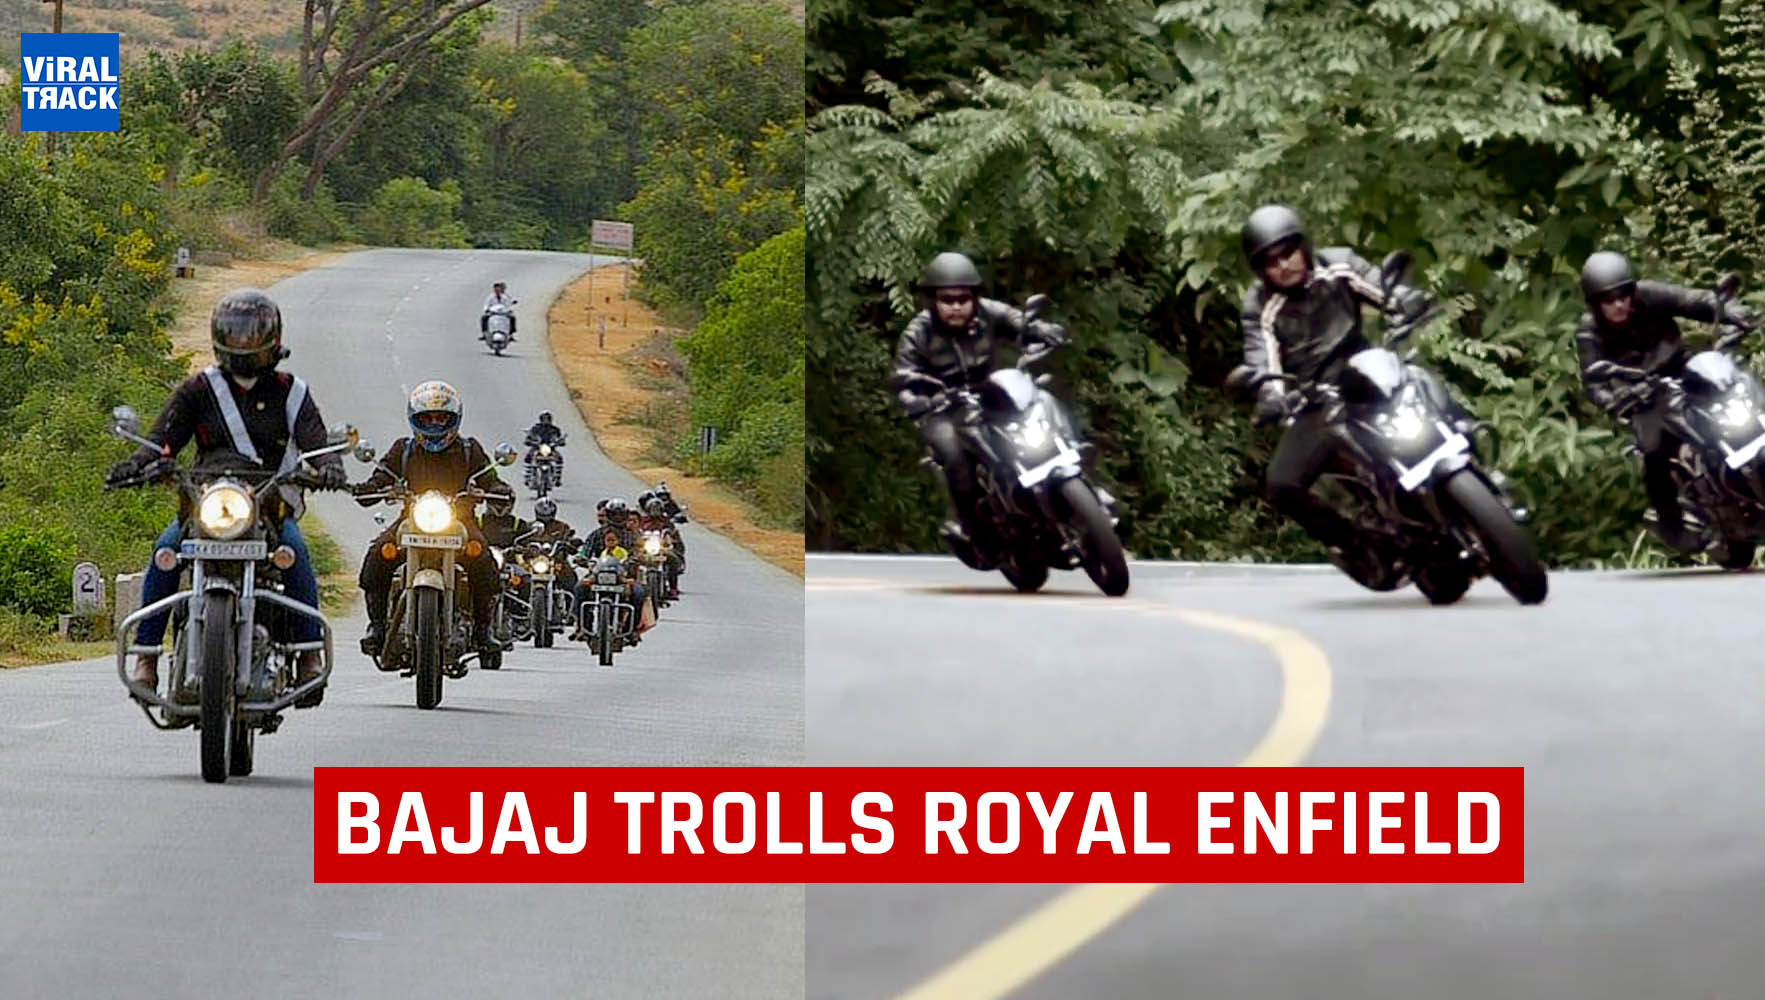 Bajaj dominar trolls royal enfield by commercial ad